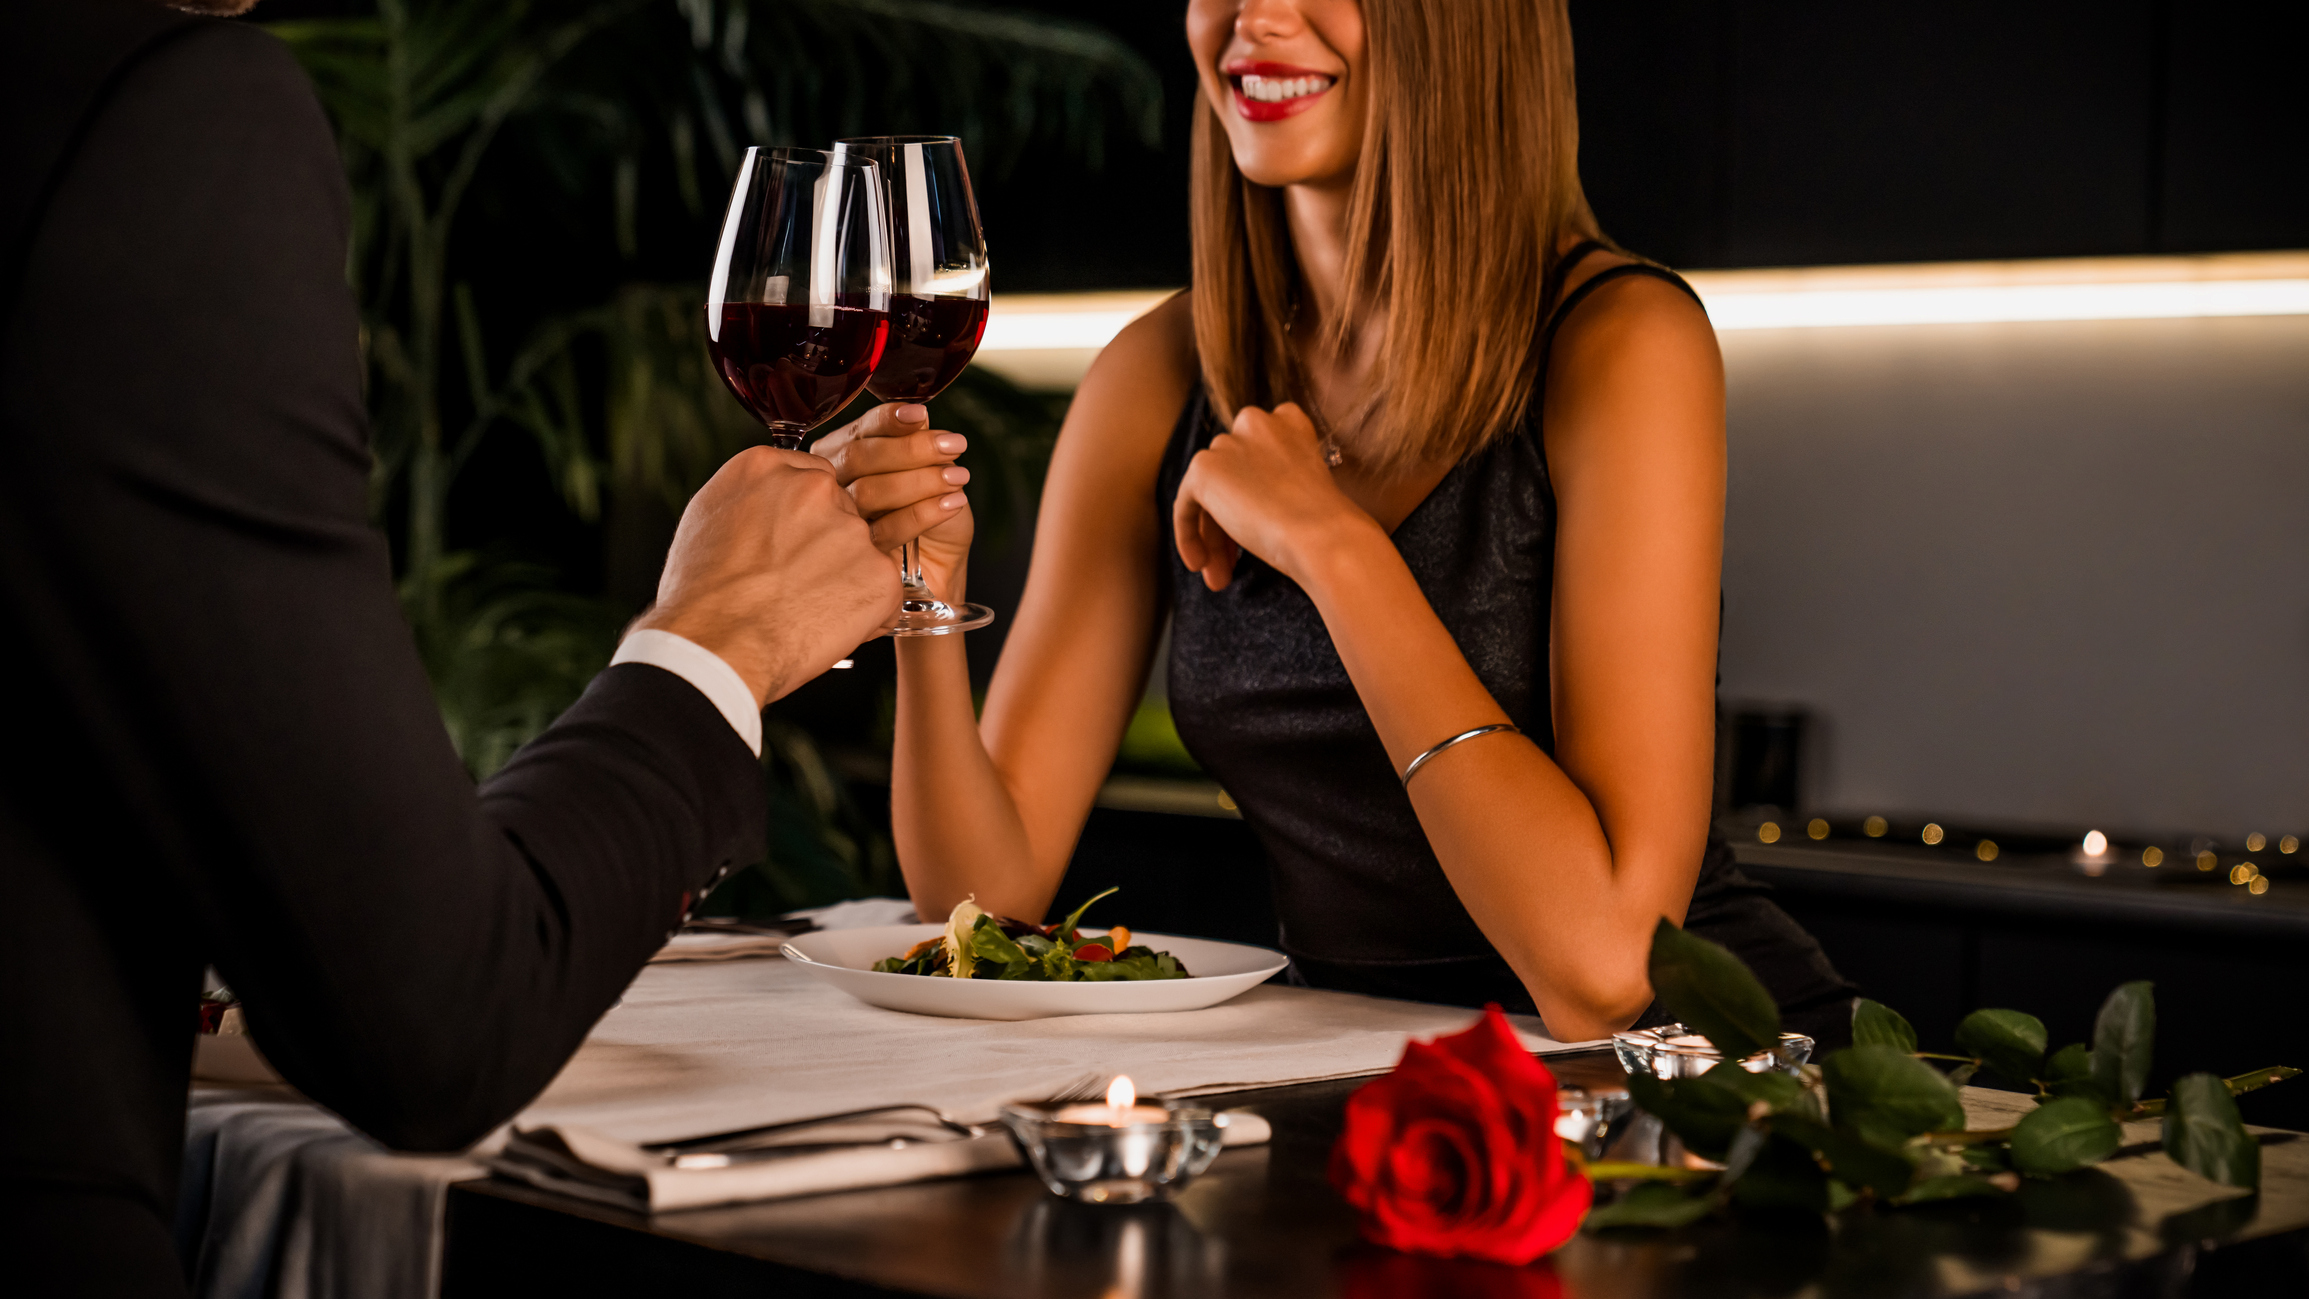 Romantic Couple Having Intimate Dinner For Two At Home Kitchen